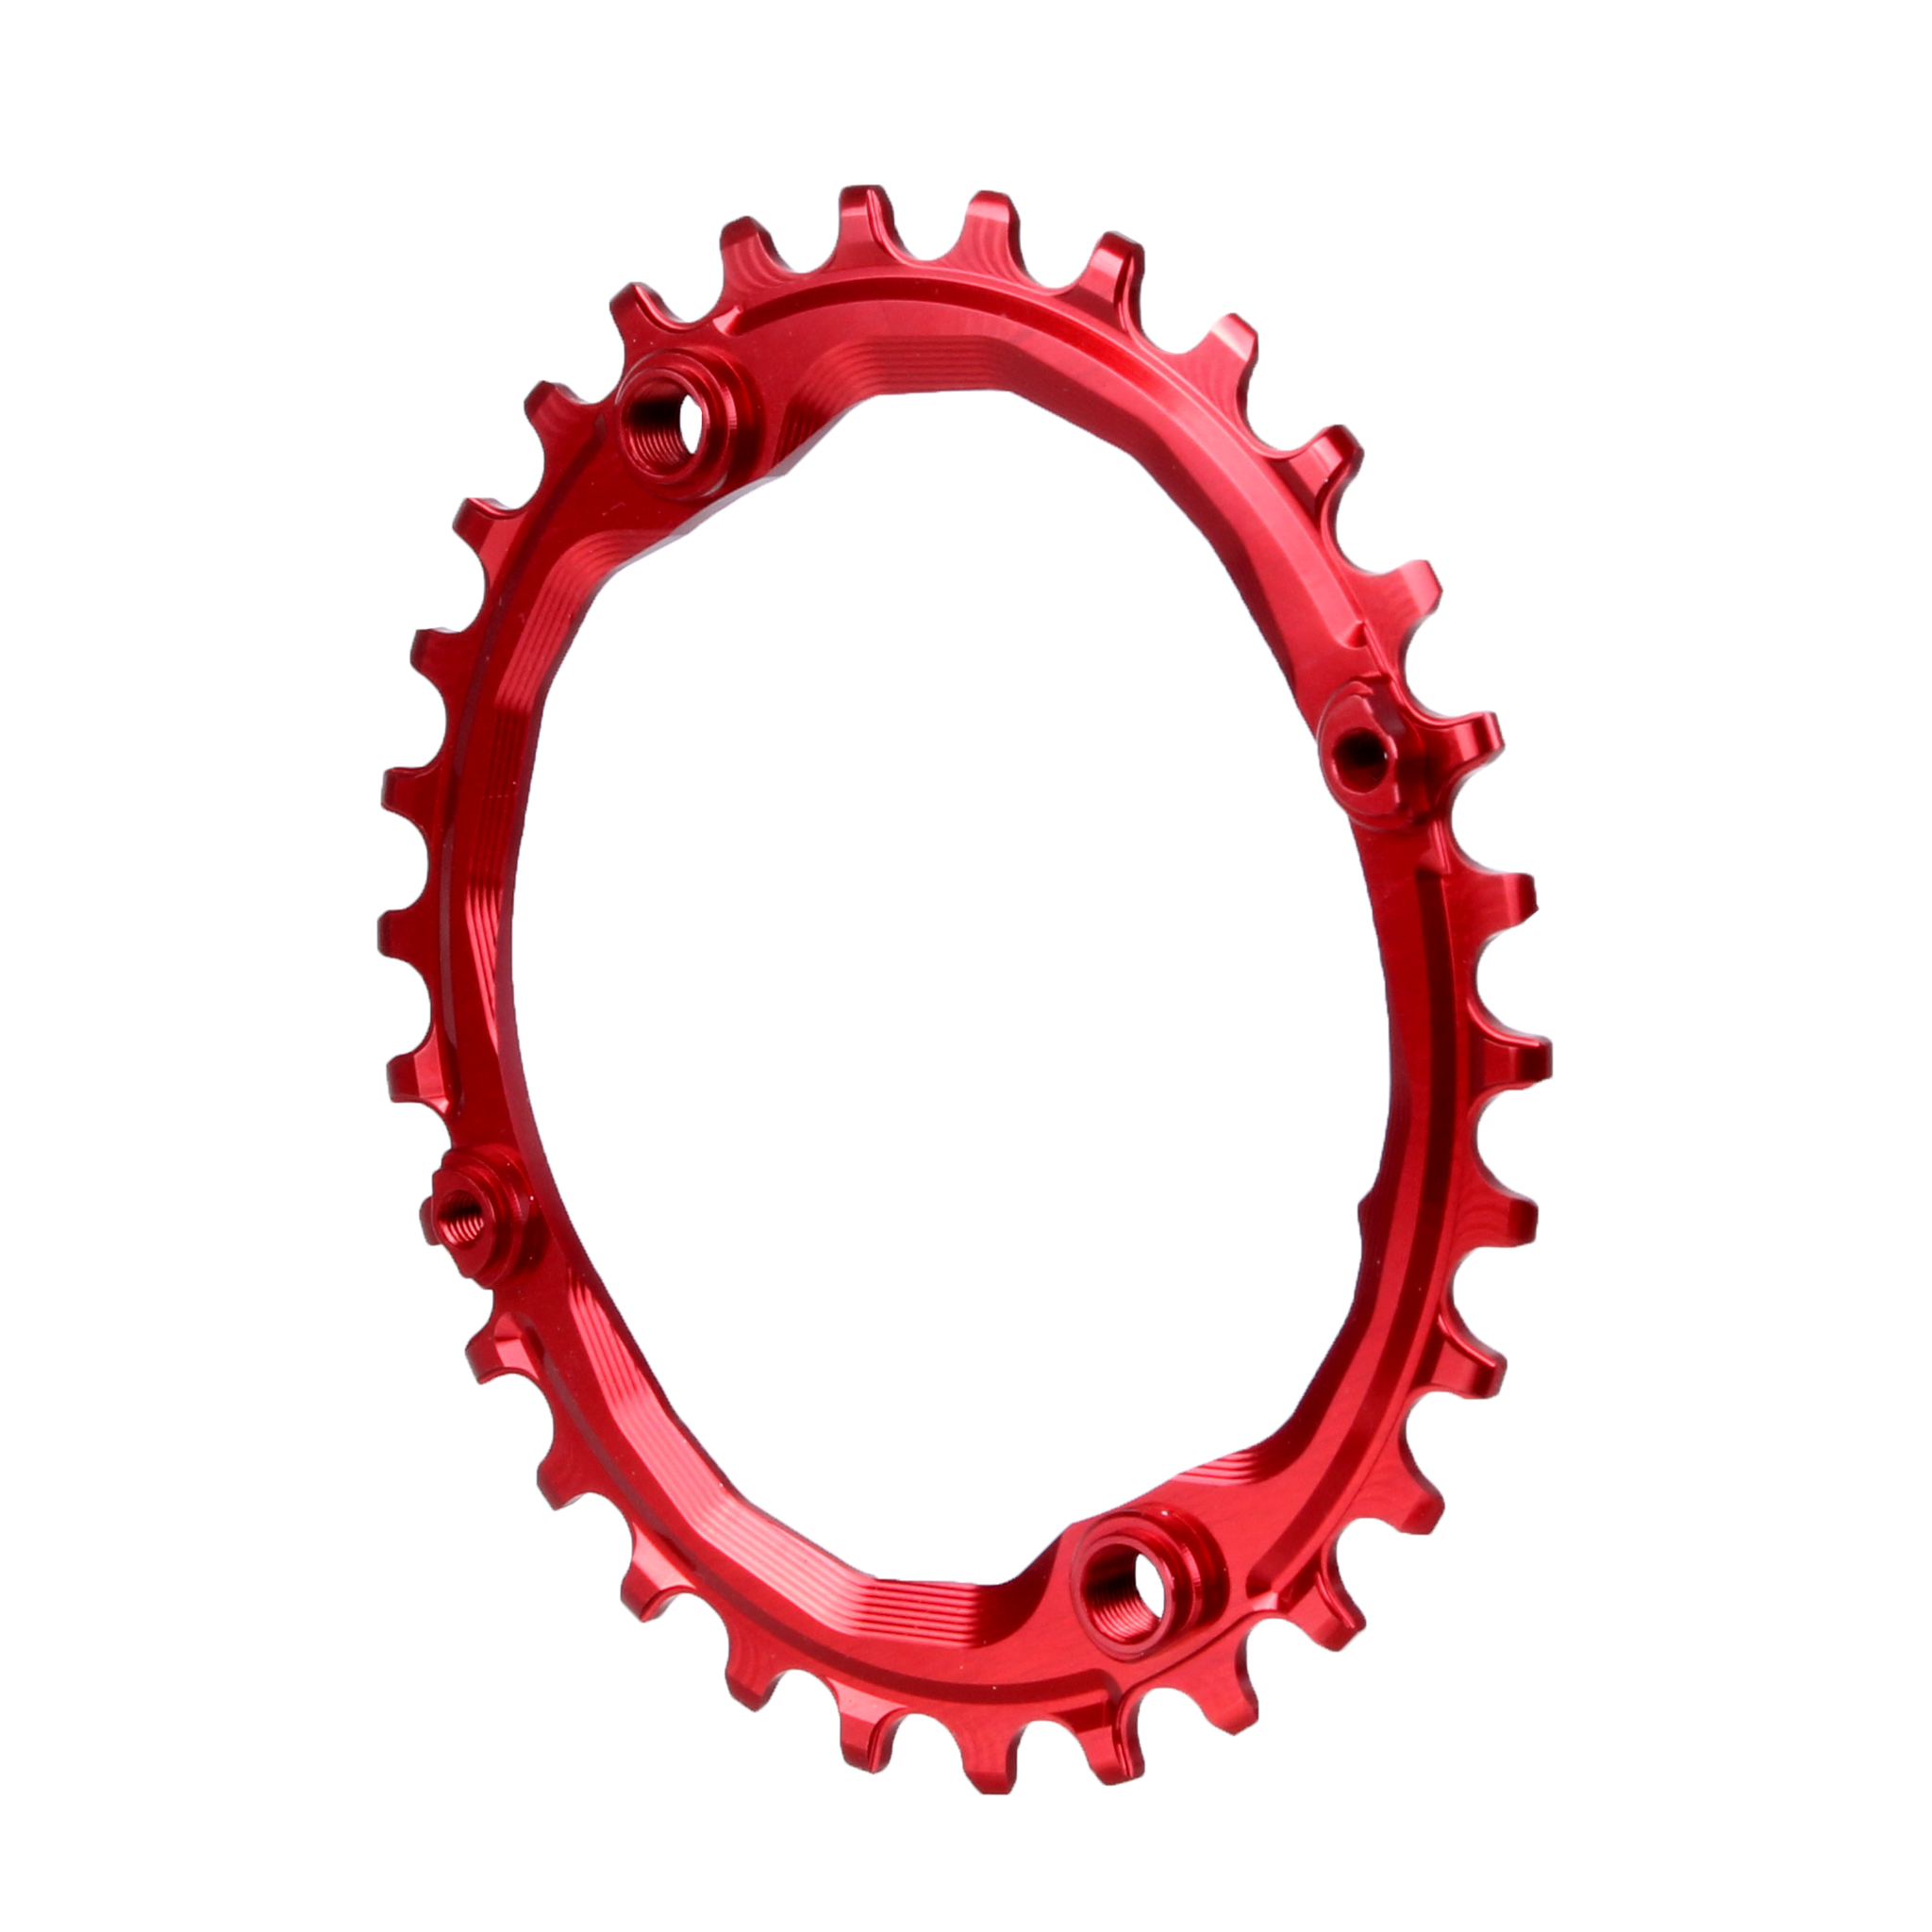 104 Oval Chainring, 104BCD 30t - Red